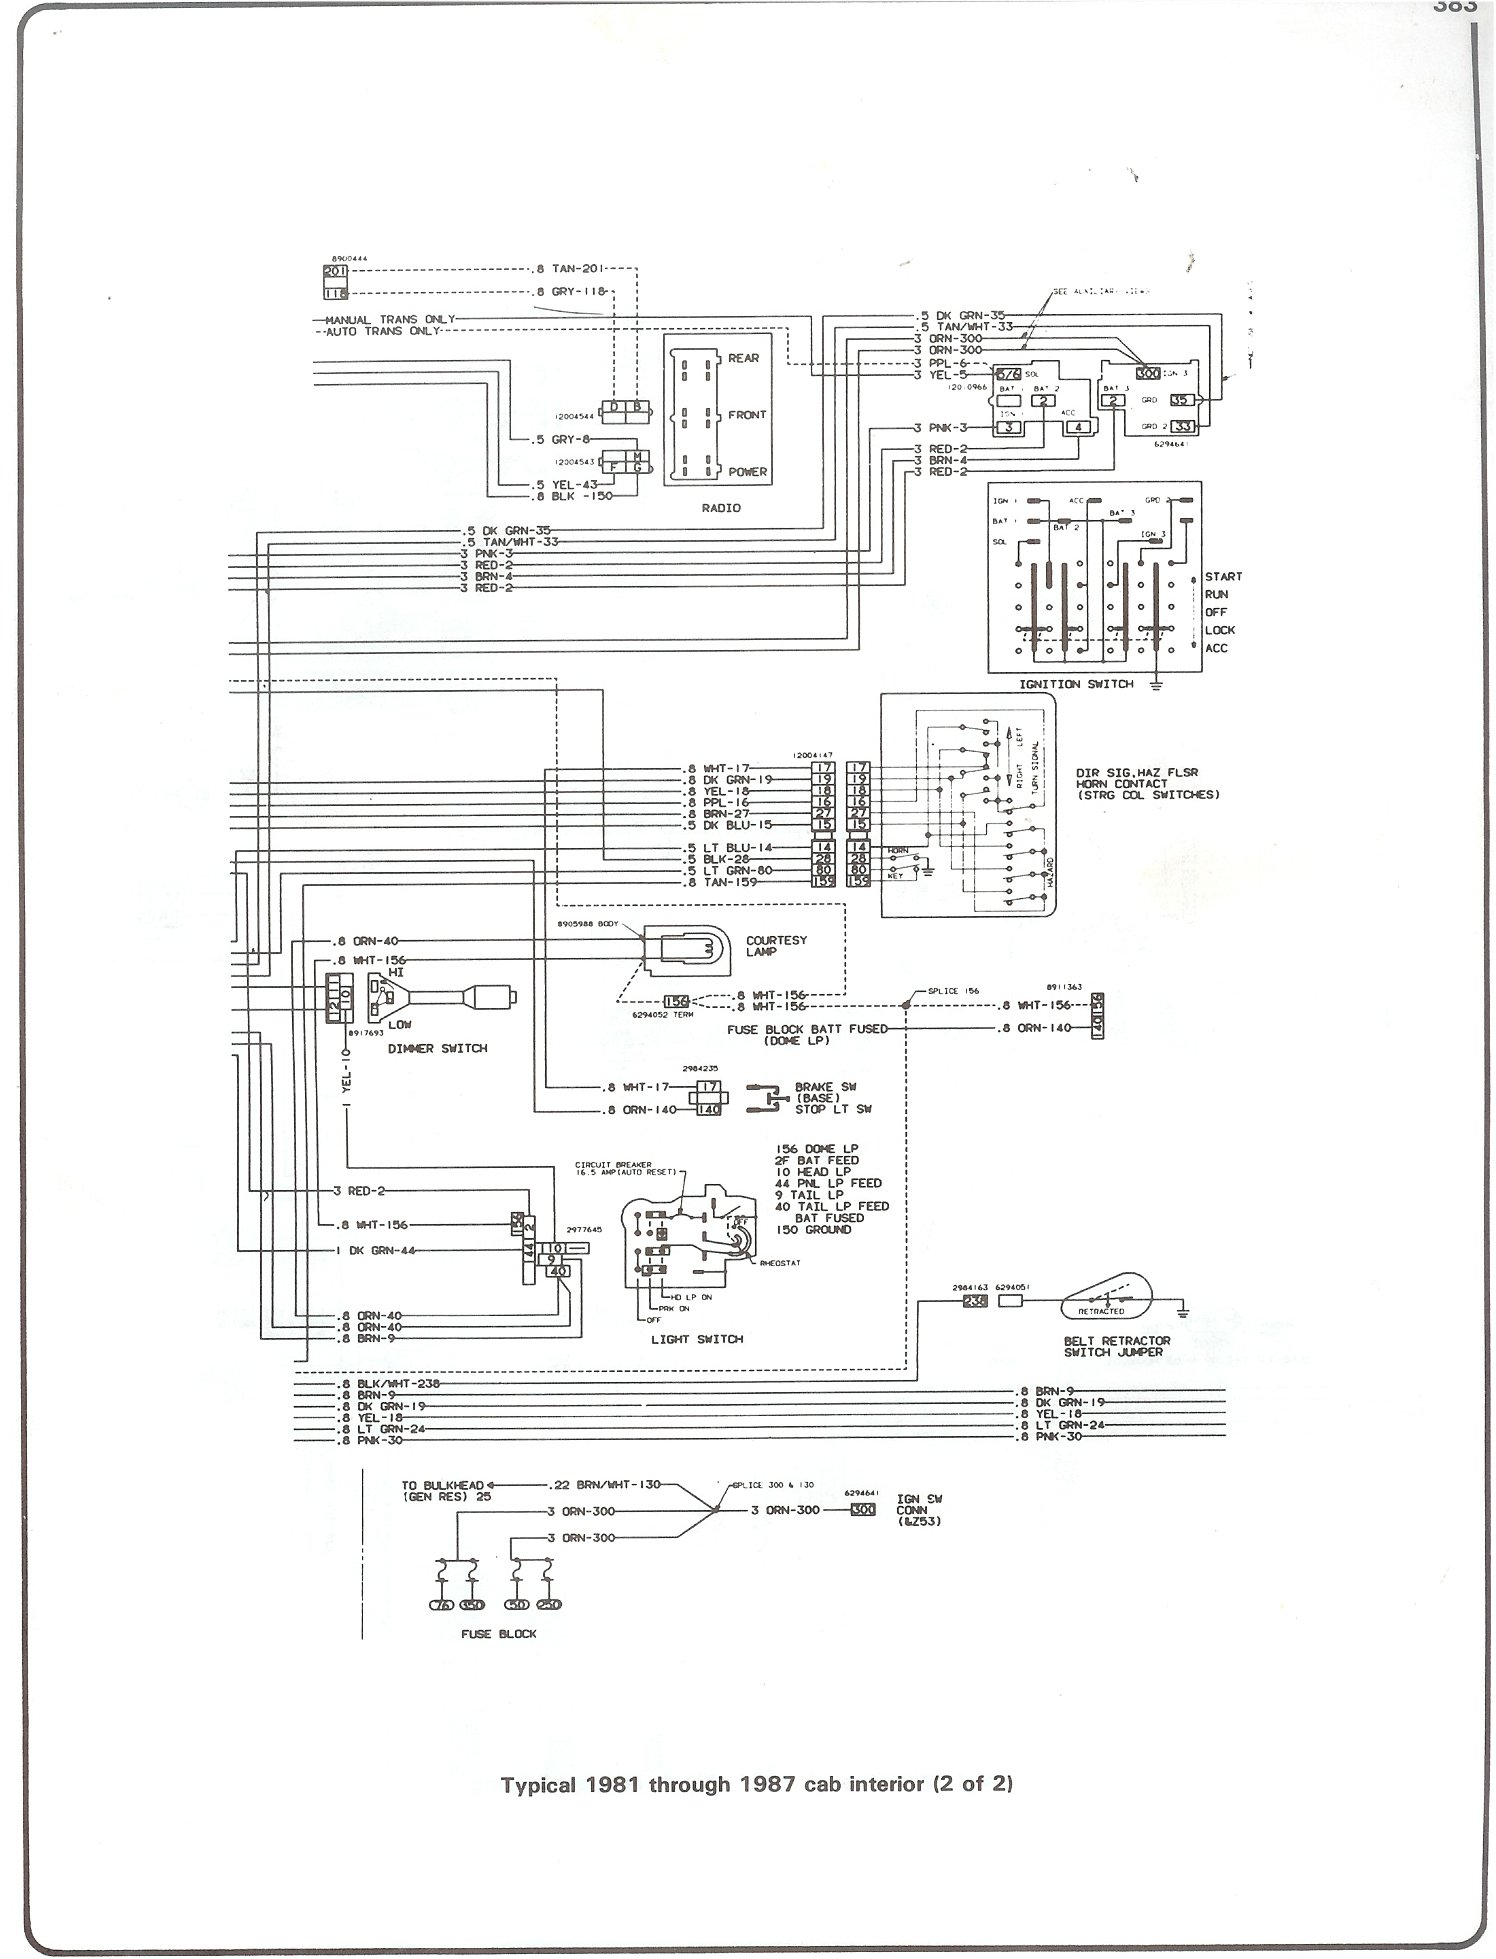 81 87_cab_inter_pg2 complete 73 87 wiring diagrams chevy starter wiring diagram at crackthecode.co